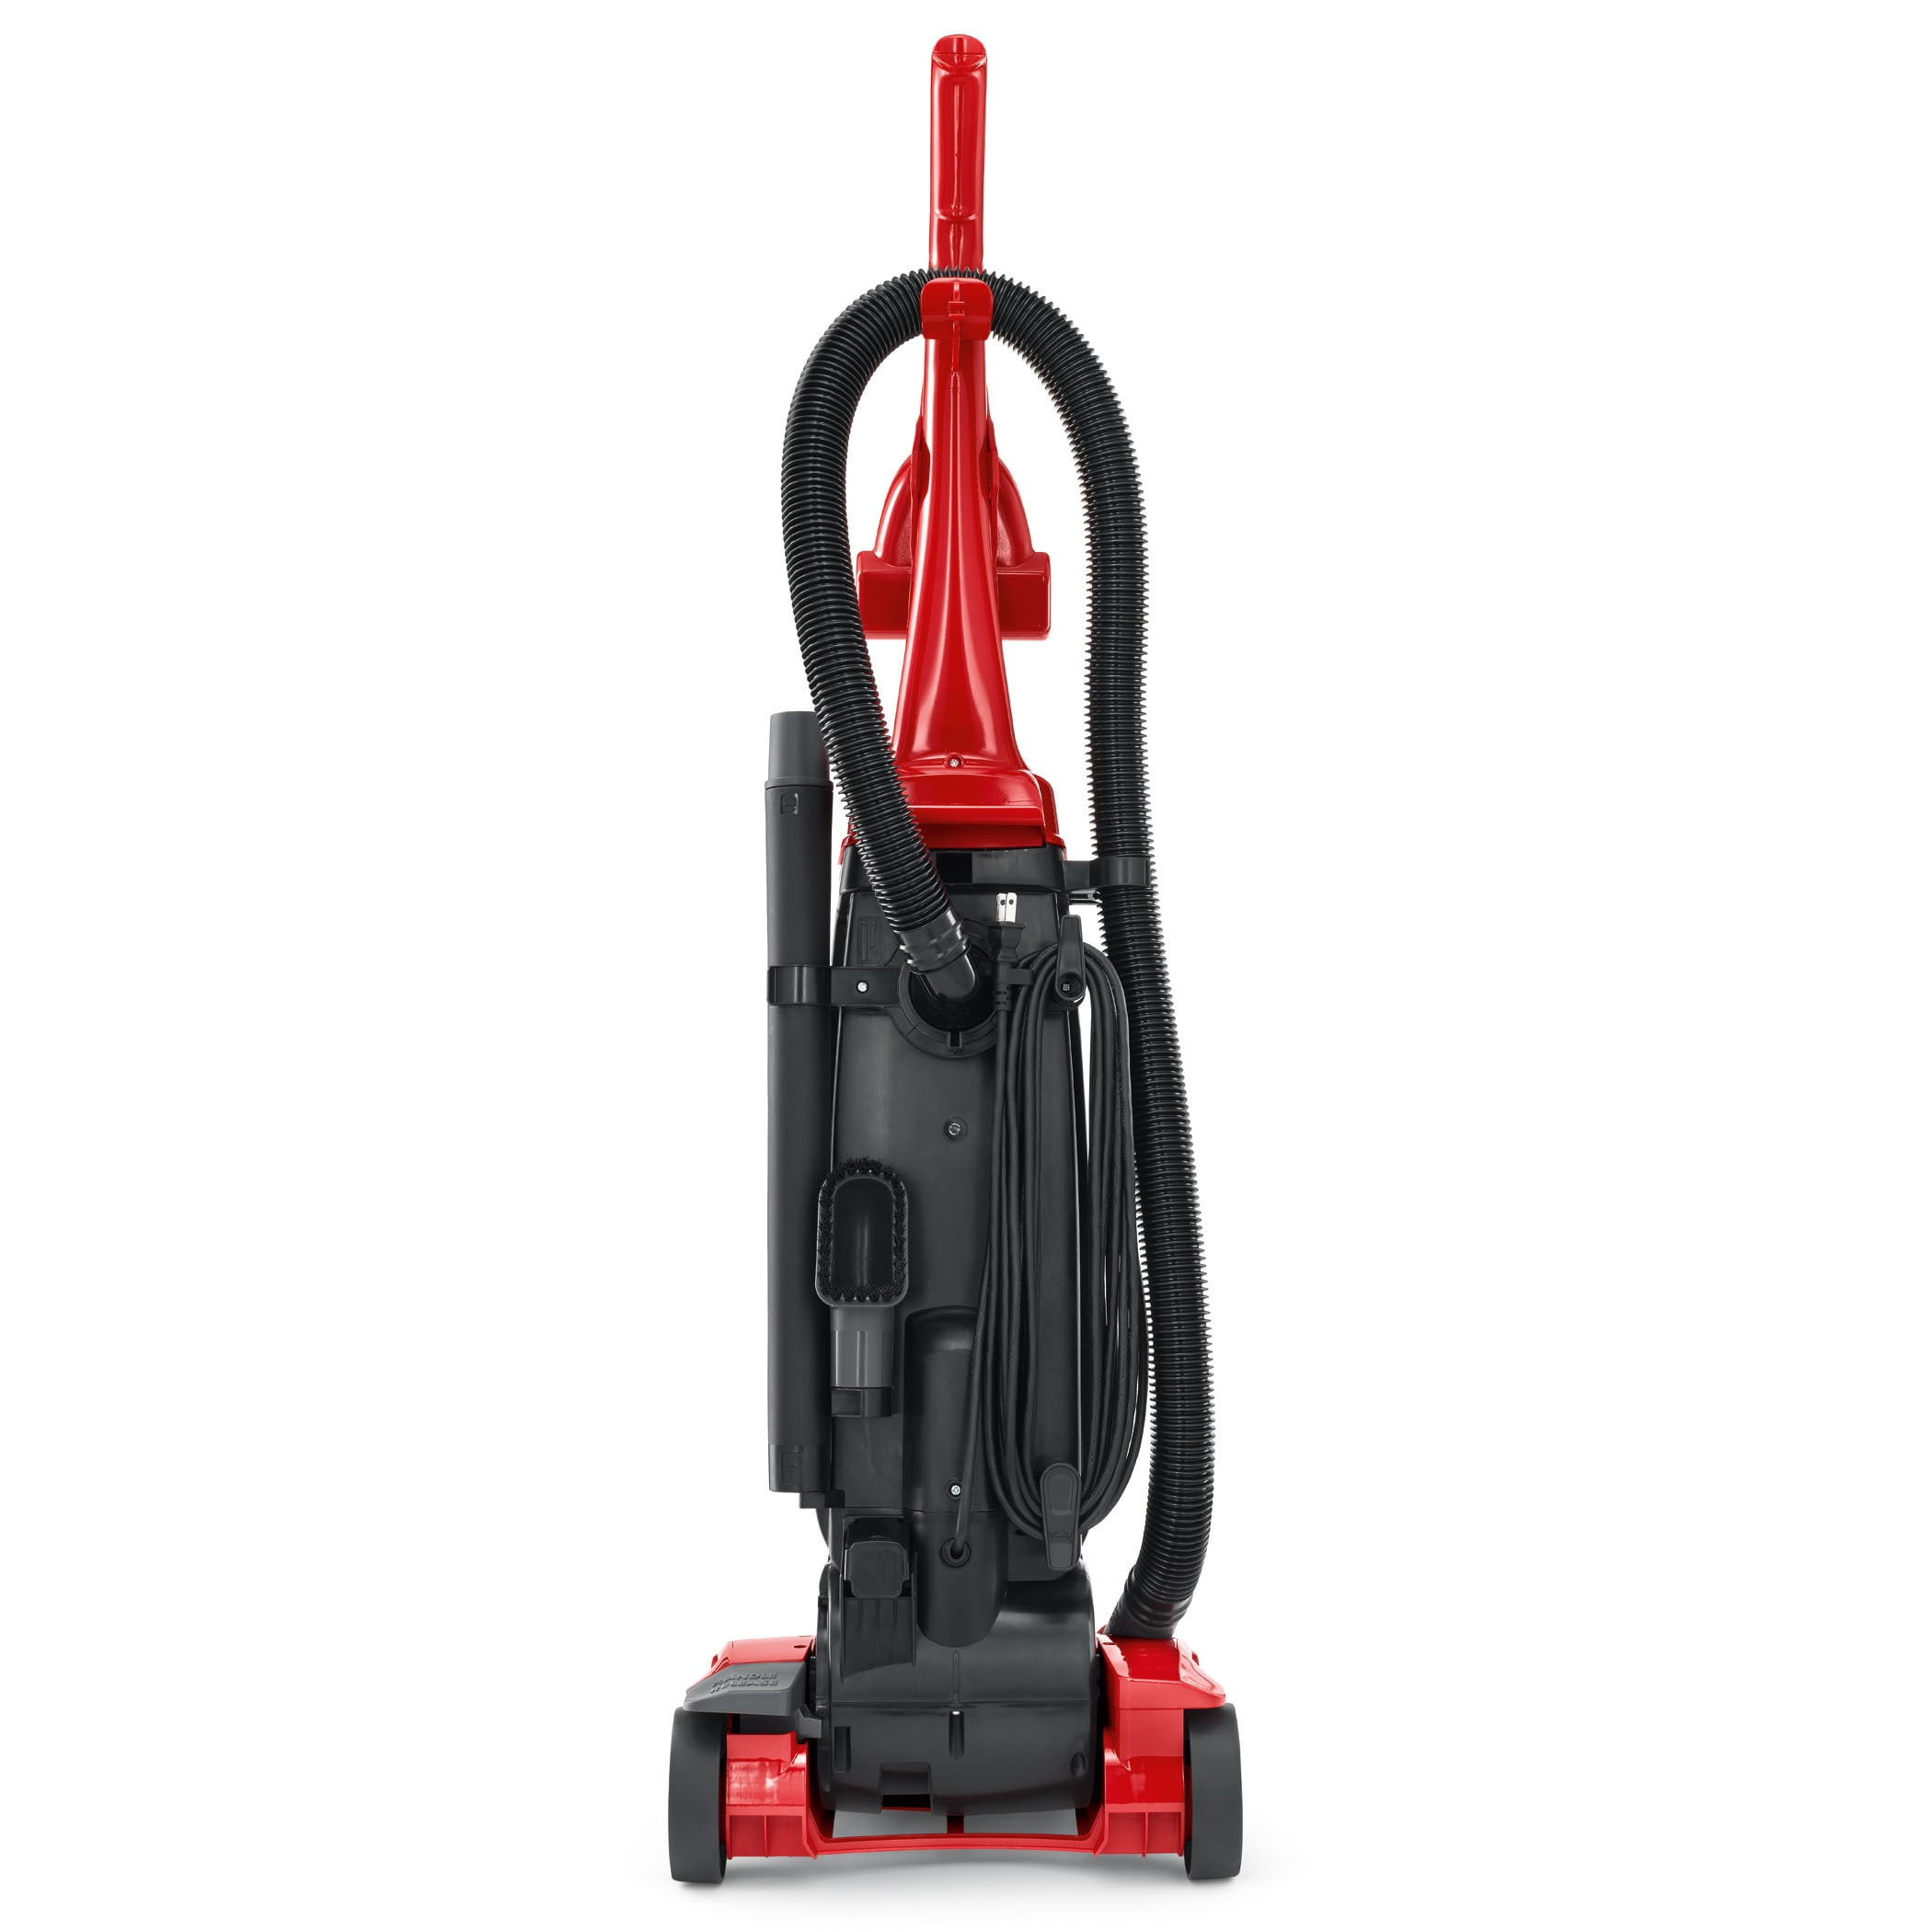 Dirt Devil Ud30010 Featherlite Bagged Upright Vacuum Free Shipping Today 16477234